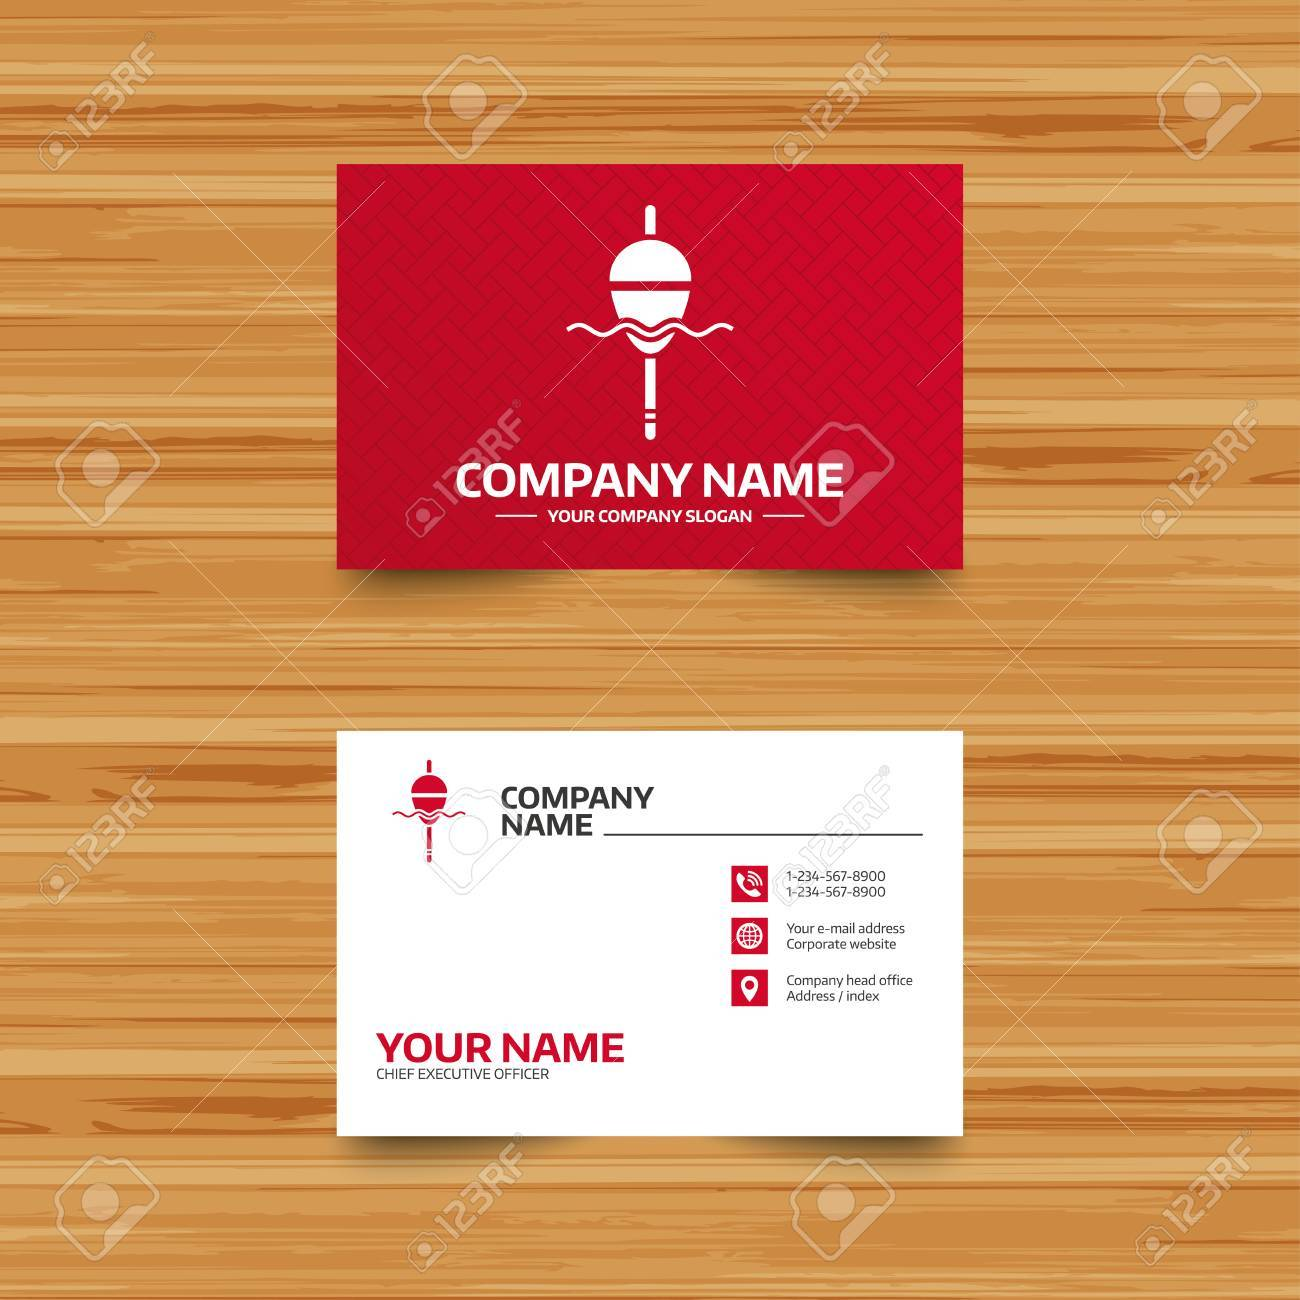 Business card template fishing sign icon float bobber symbol business card template fishing sign icon float bobber symbol fishing tackle phone colourmoves